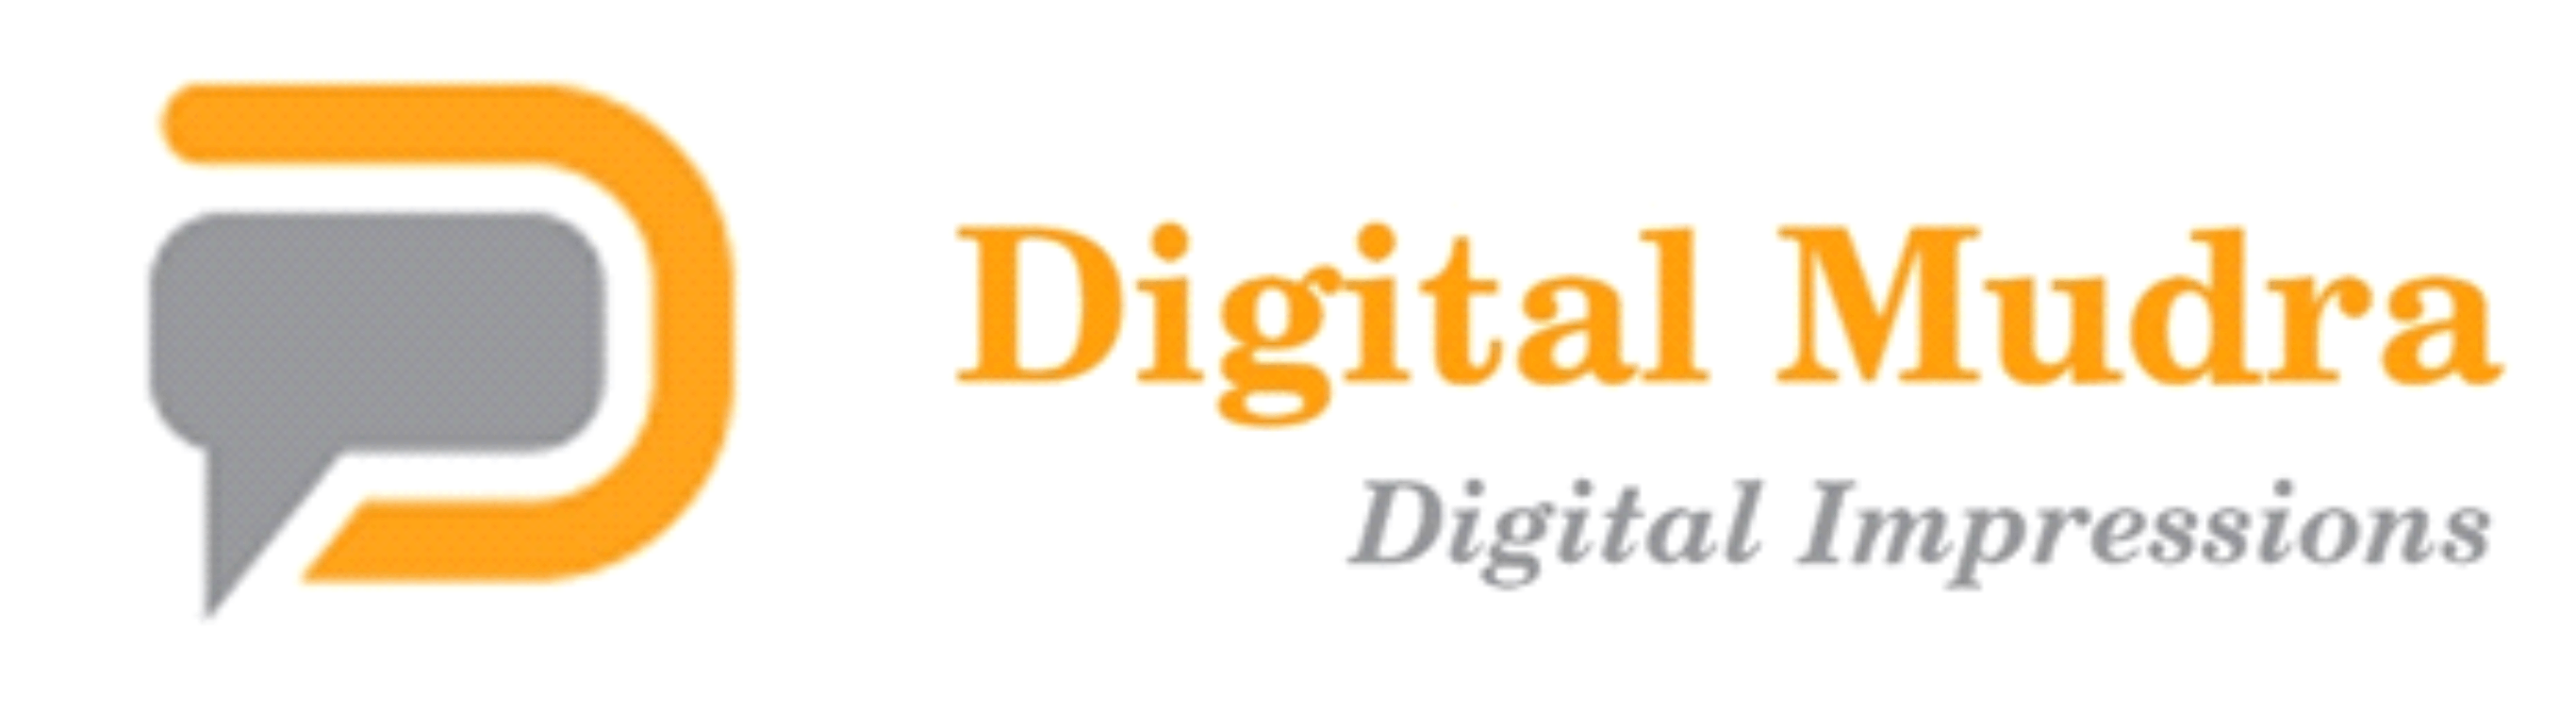 Digital Mudra Media Solution - logo